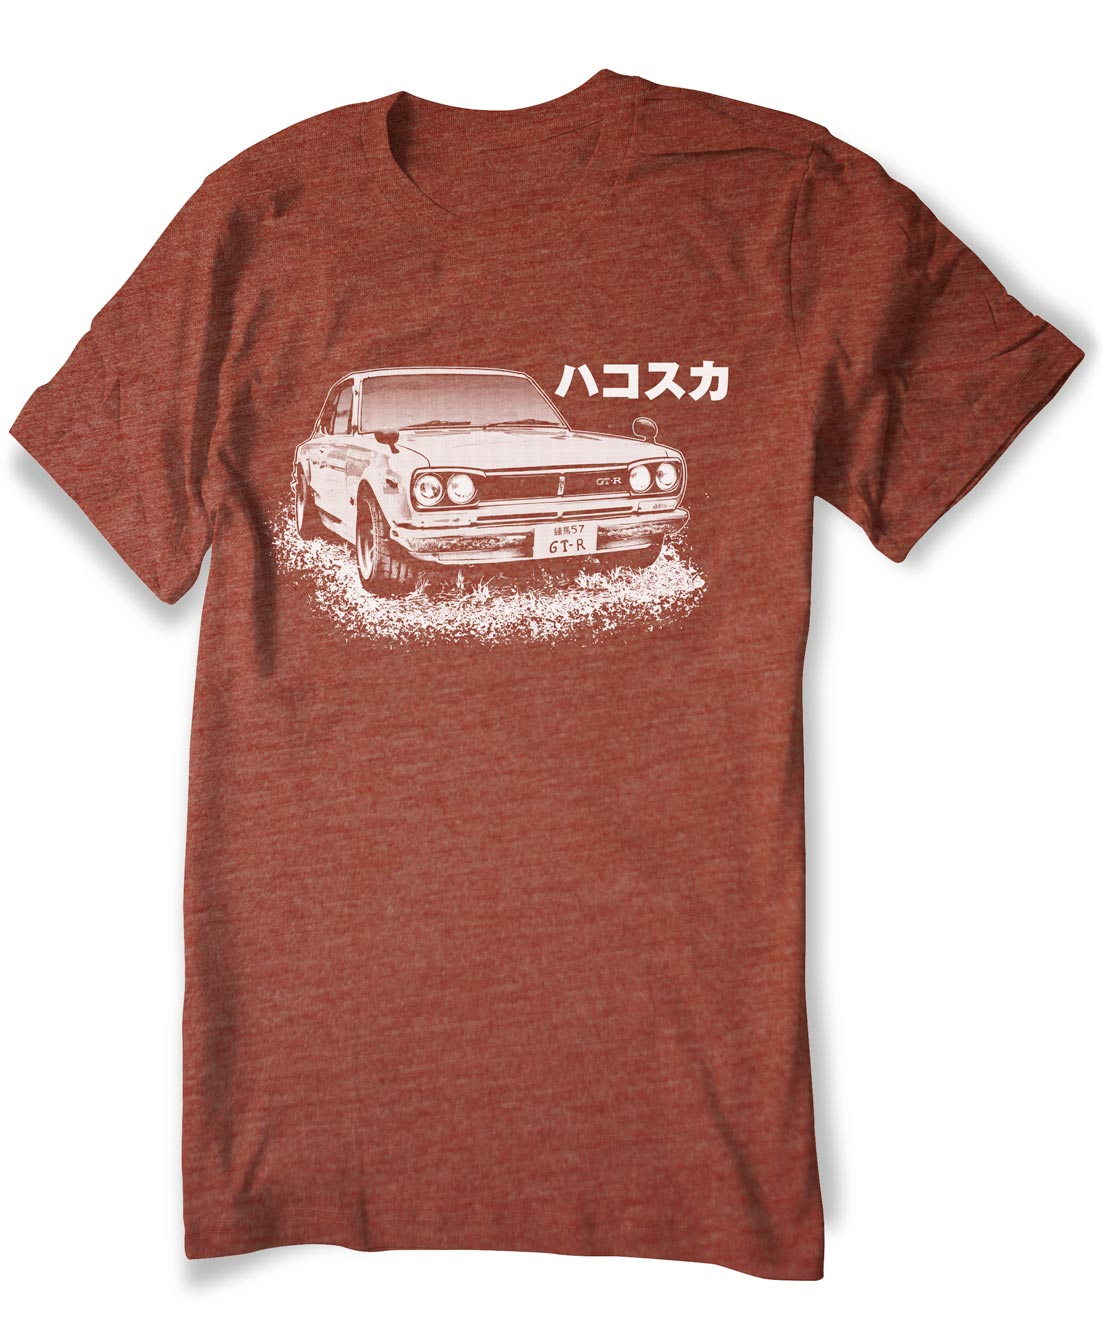 Skyline Hakosuka Shirt